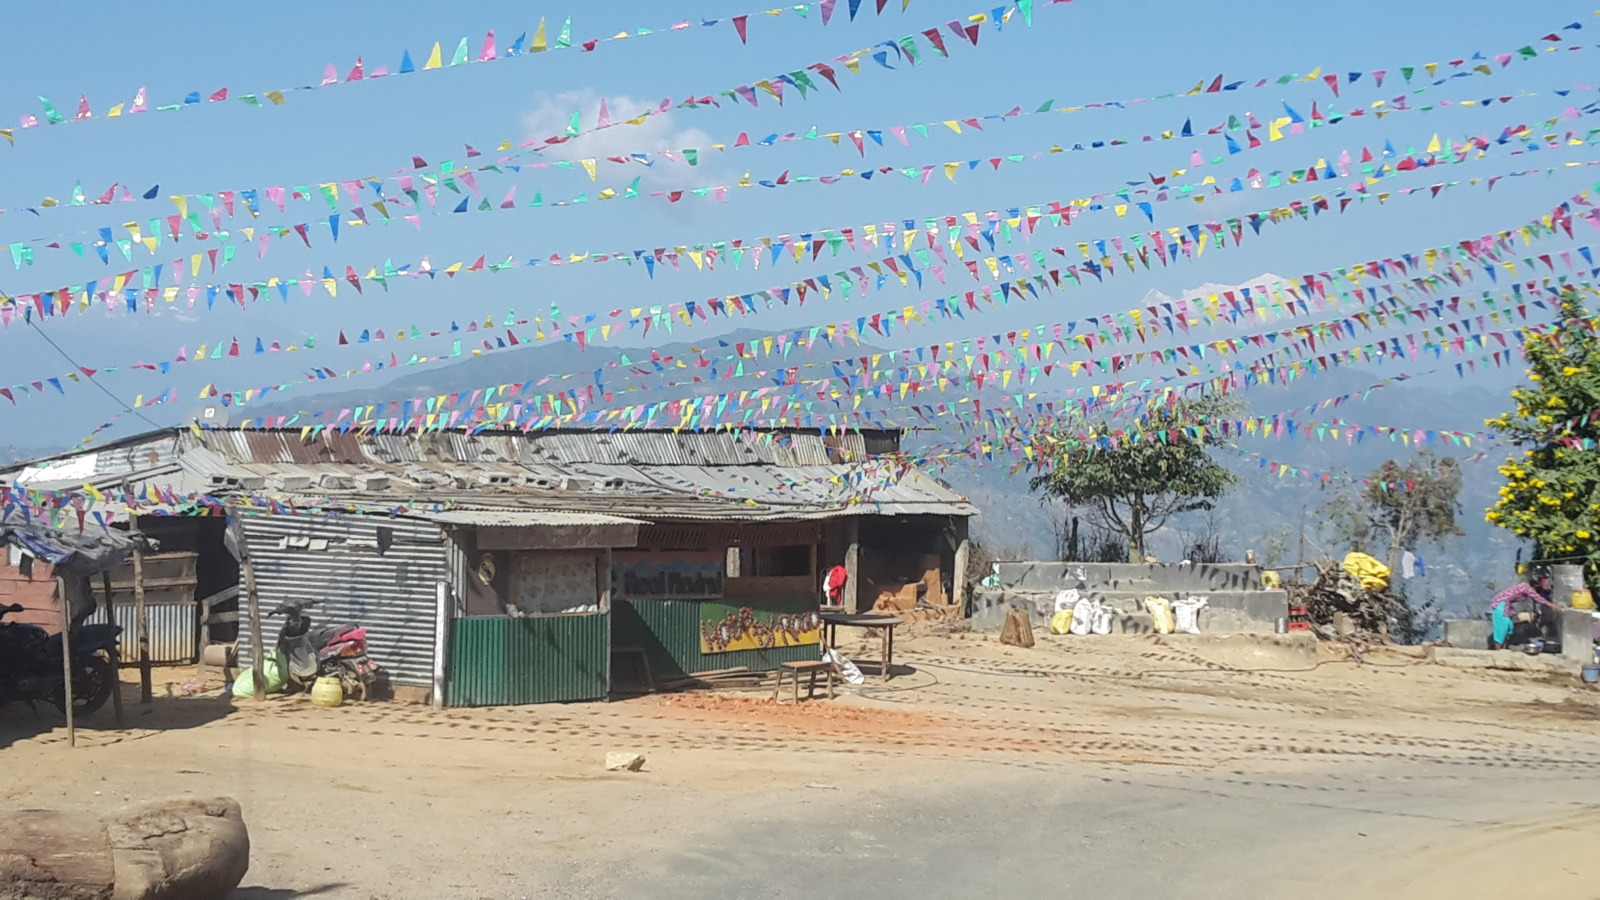 Flags at one of the villages on the Tribhuvan Highway.